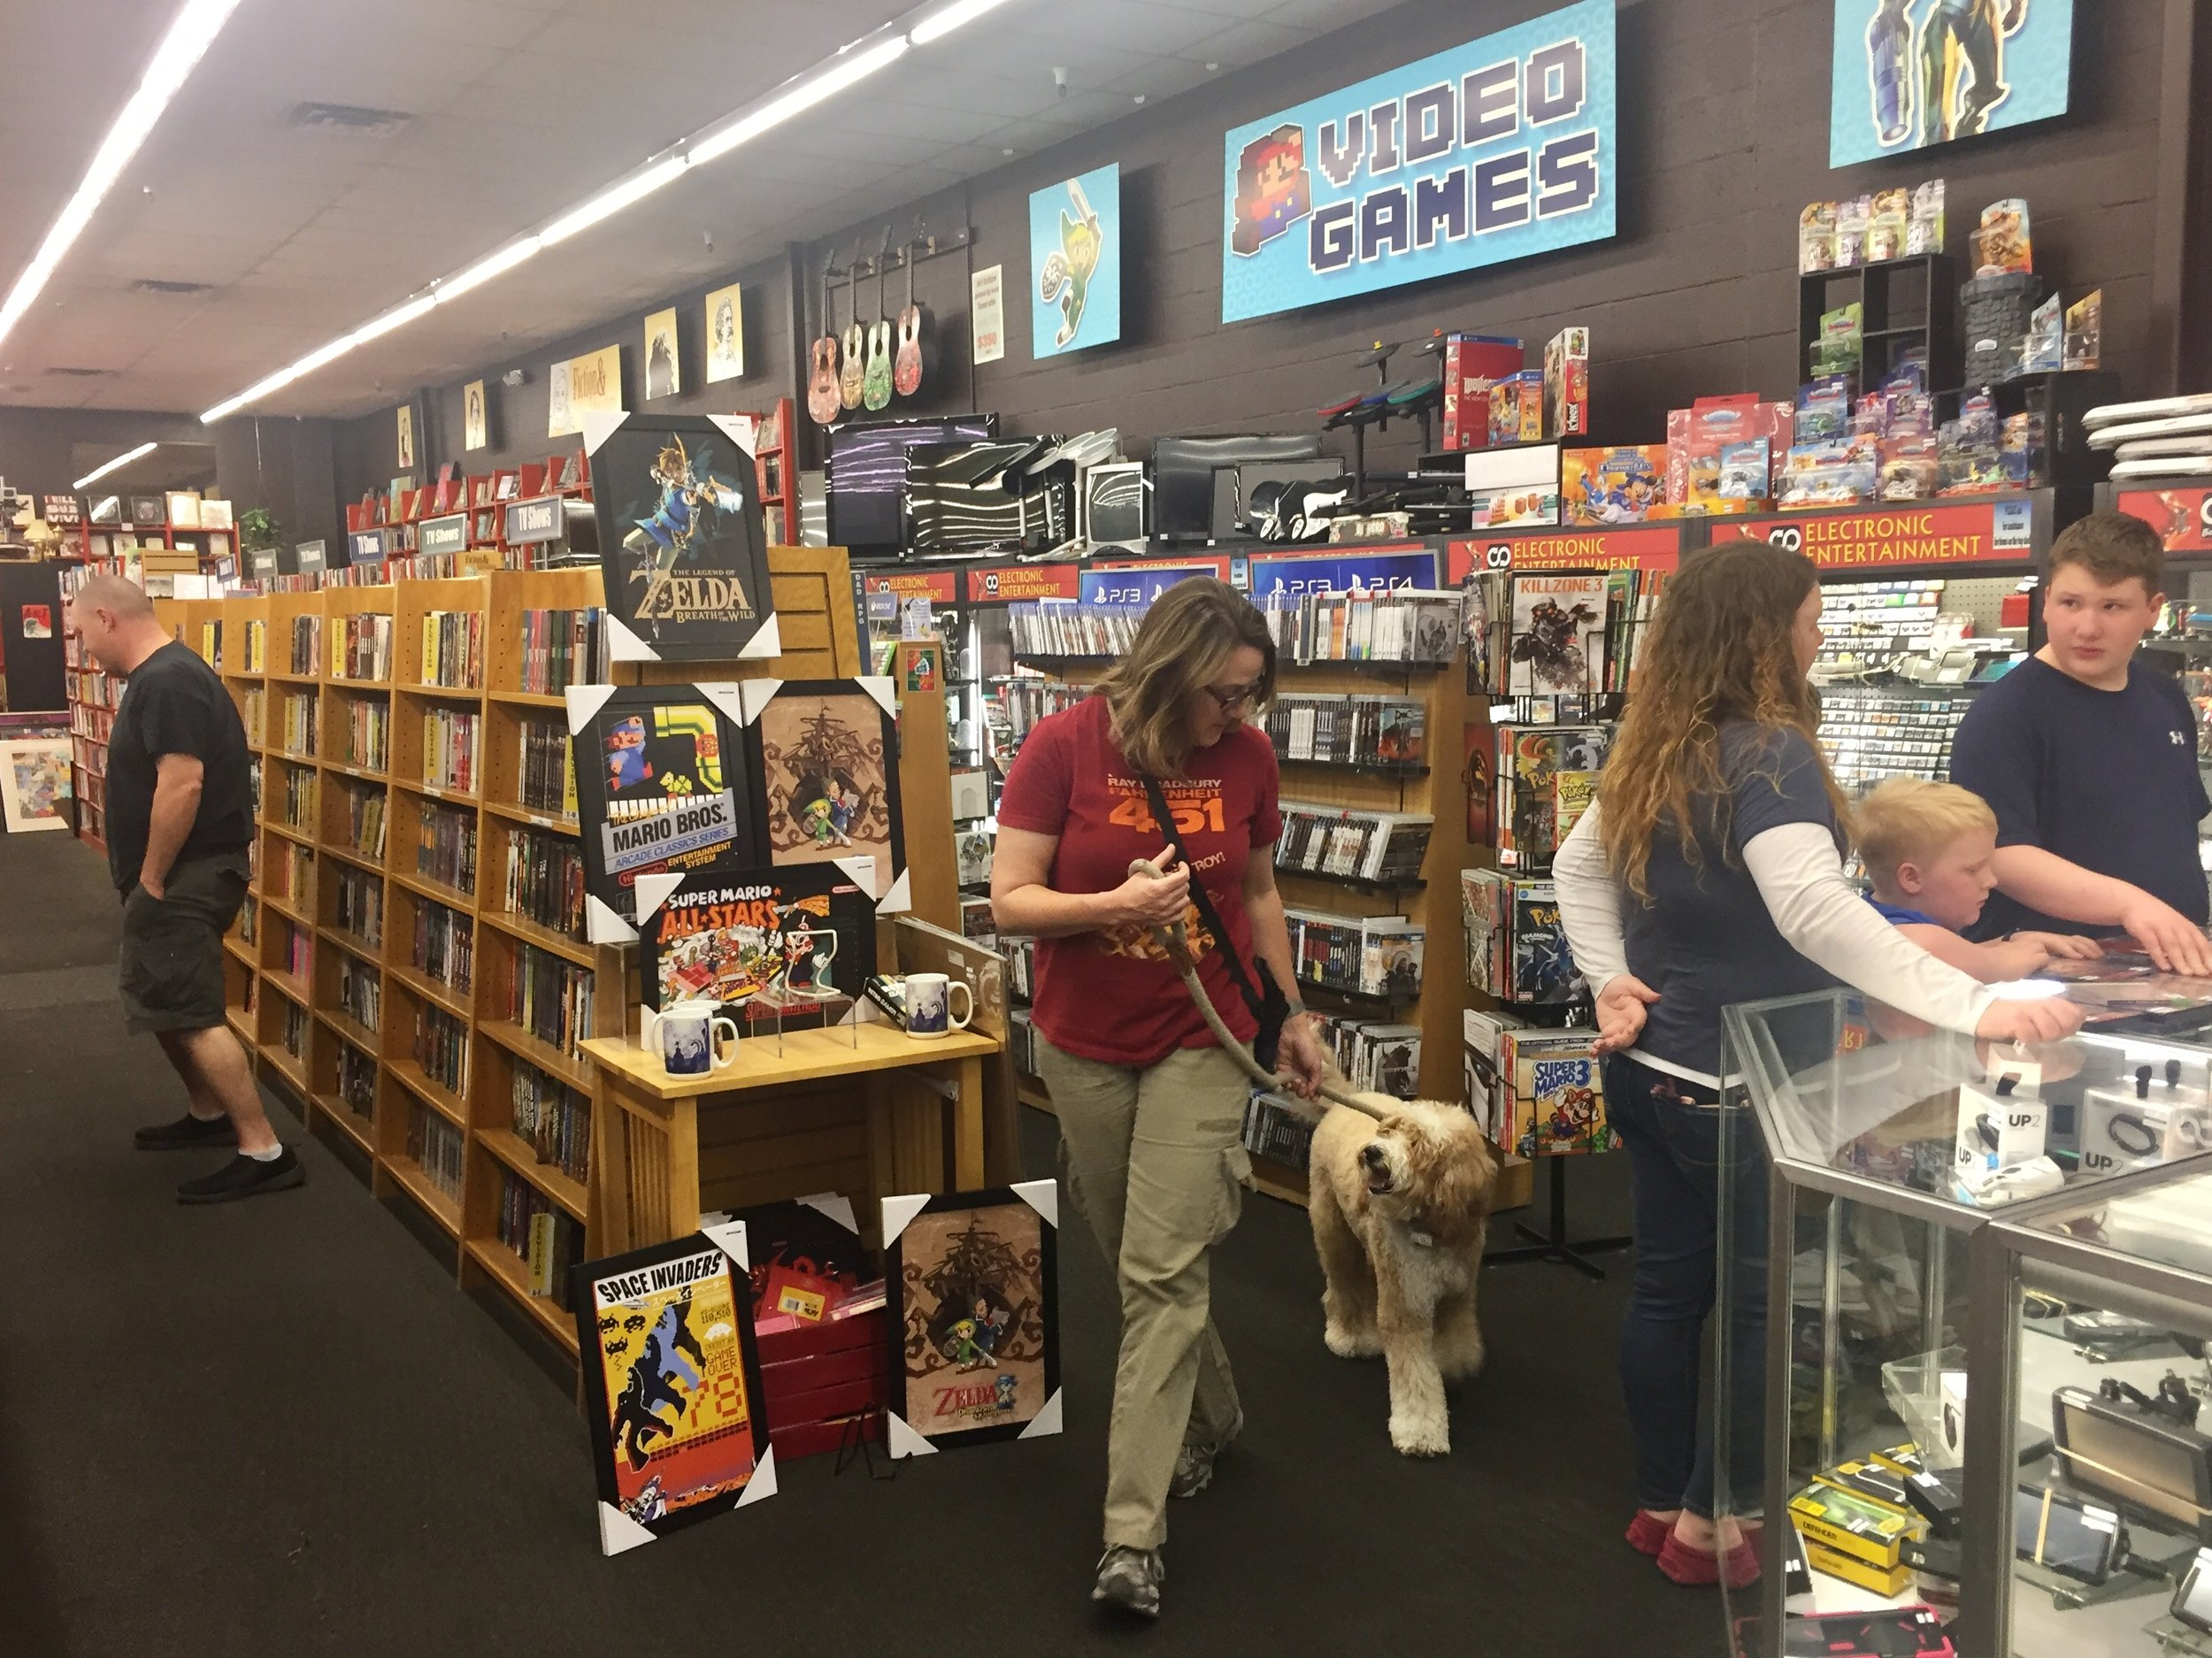 More people at Bookmans were checking out the video games, music, and instruments, so we spent more time weaving through those aisles to practice walking through a crowd.